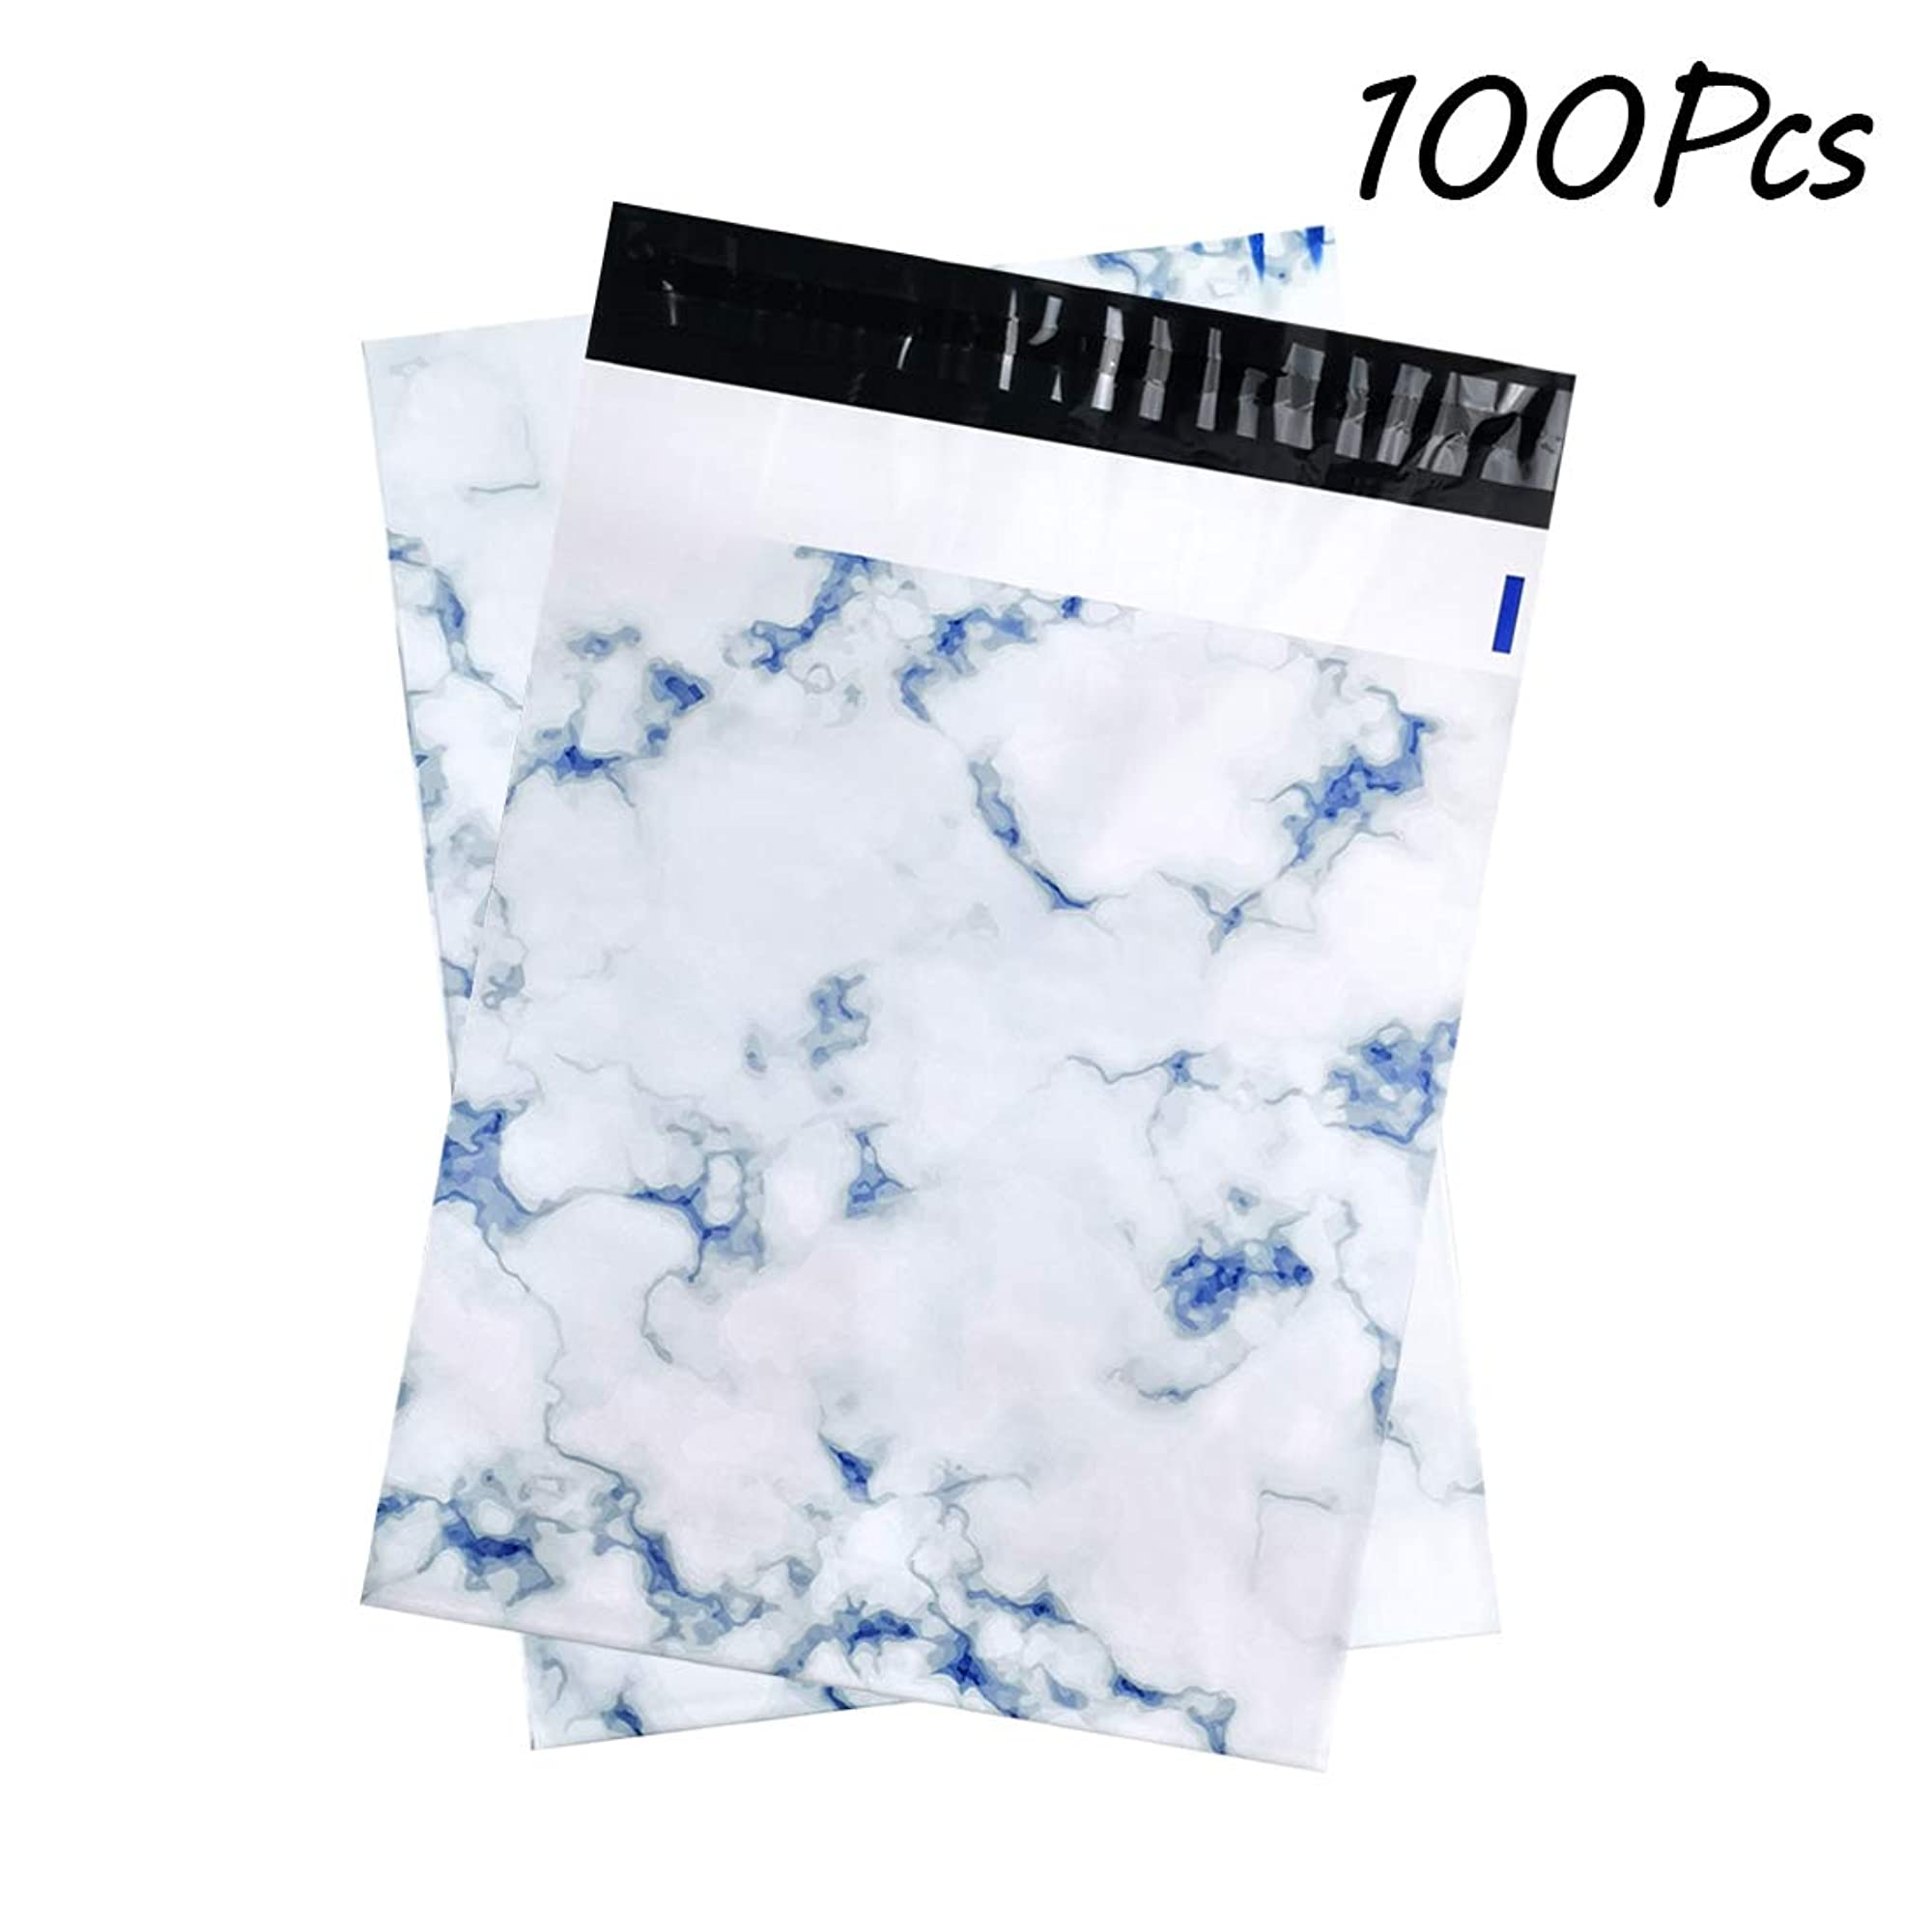 100 Pieces Of Mailing Shipping Bags